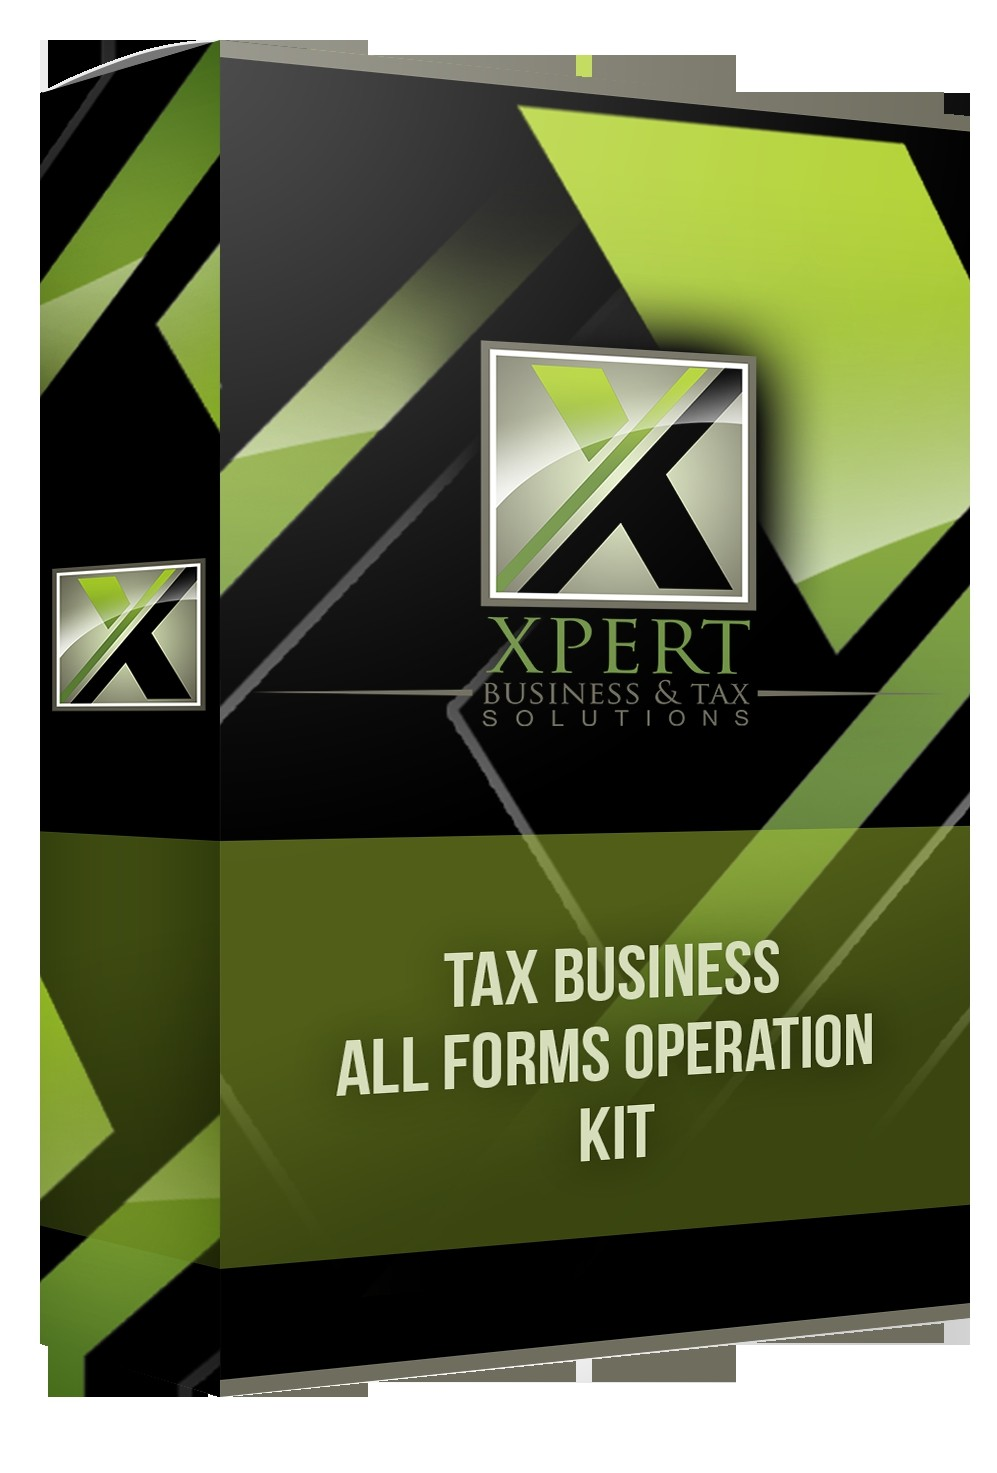 Tax Business All Forms Operation Kit